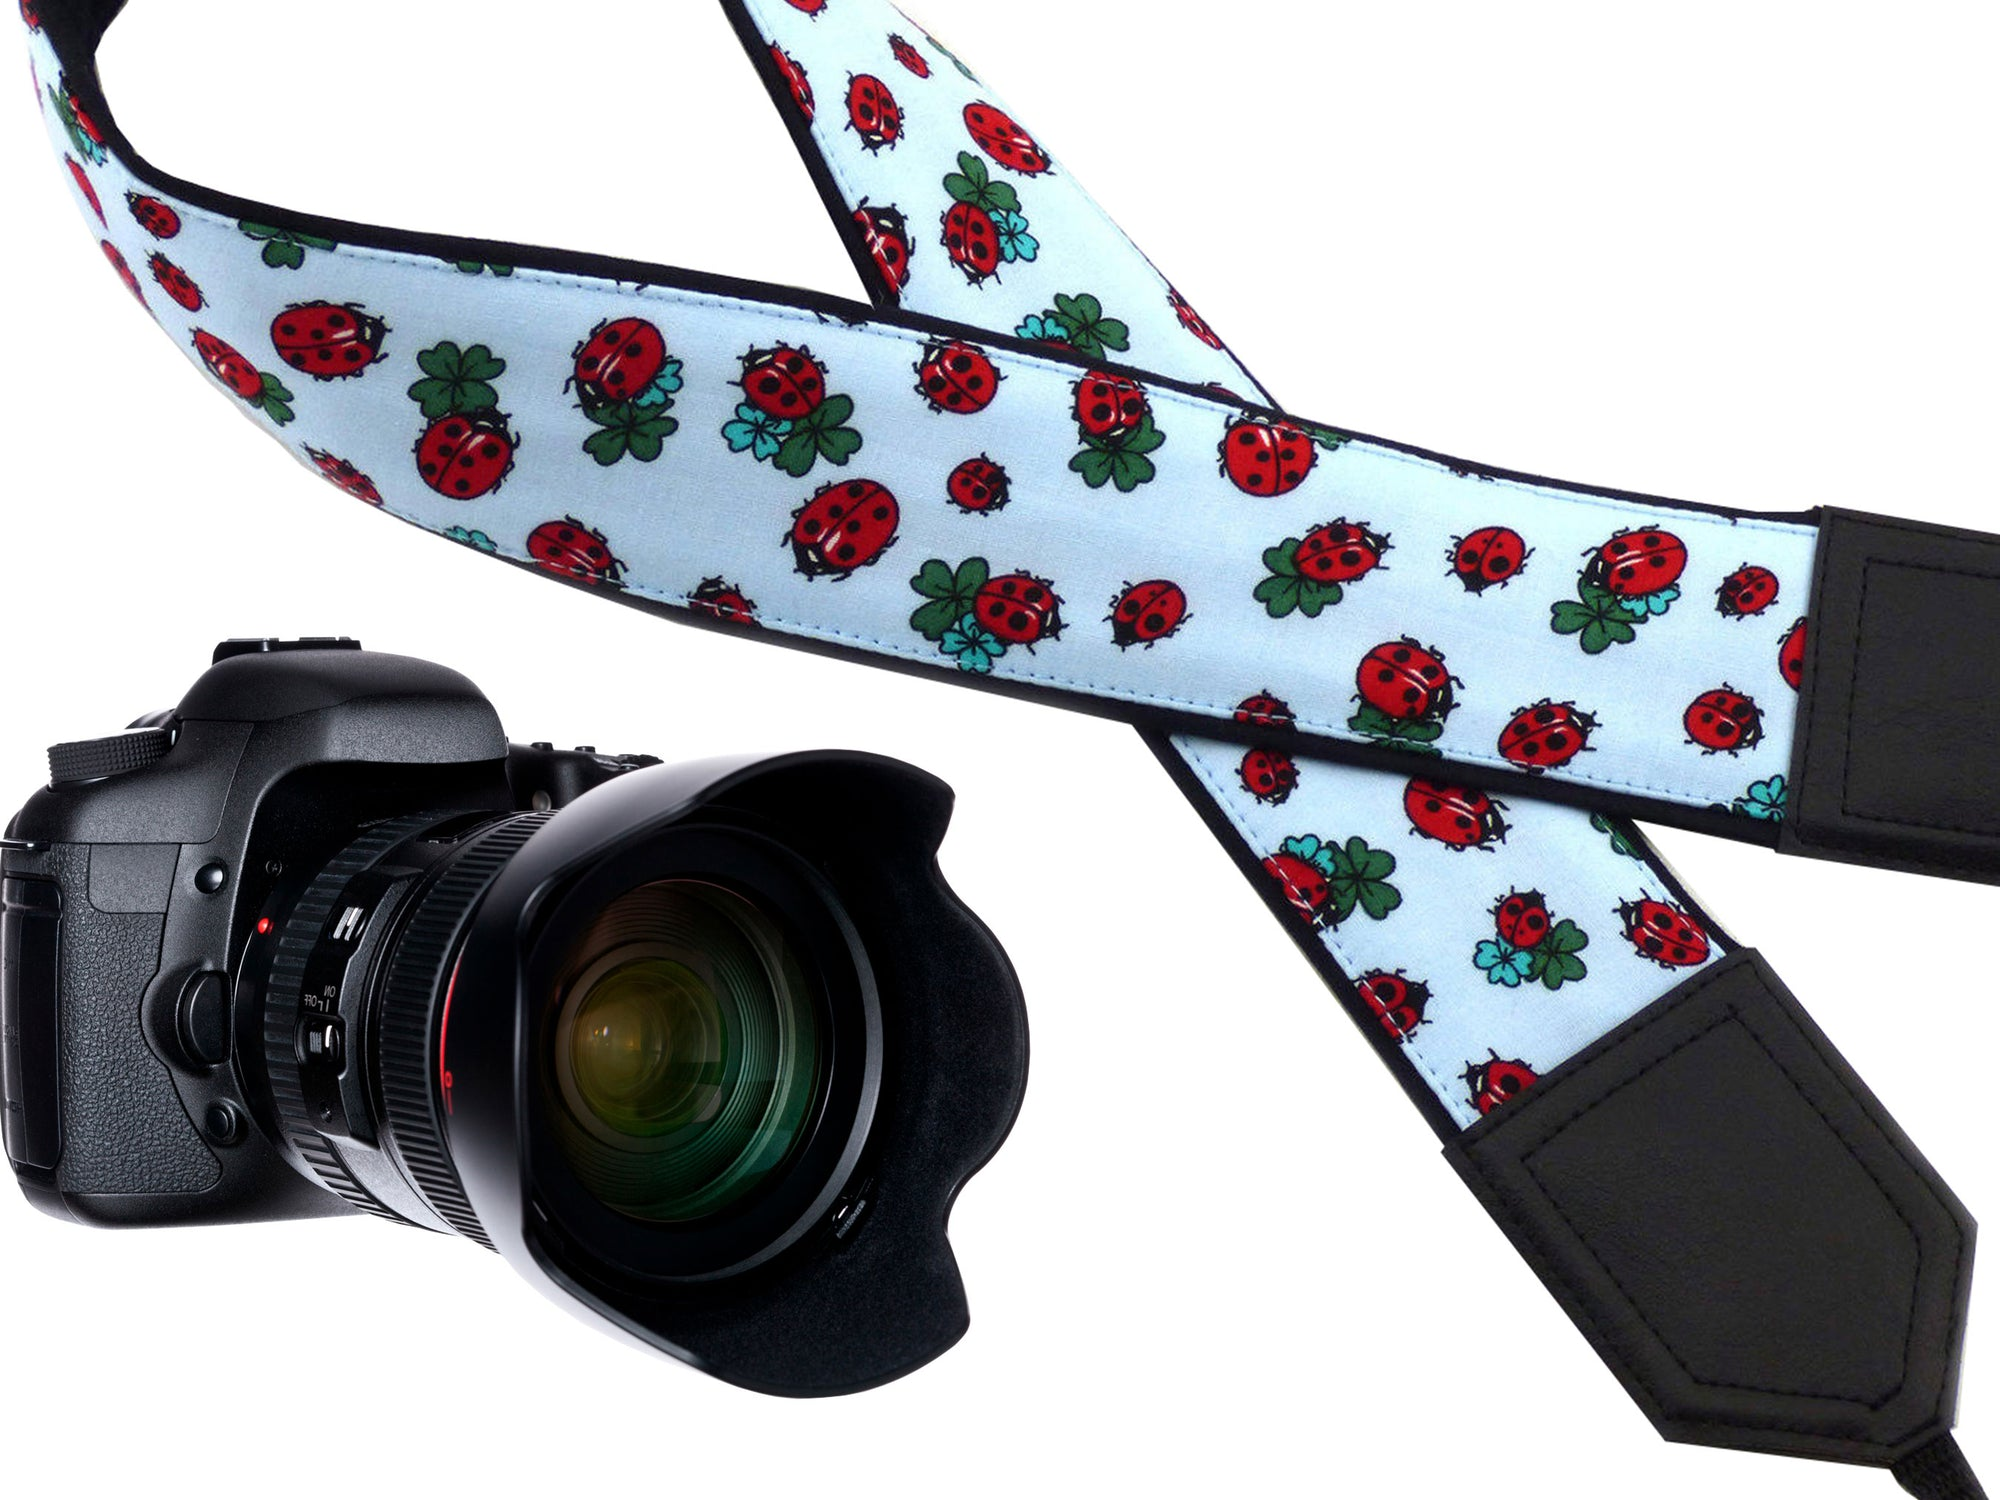 Ladybird camera strap with four leaf clovers. Light weight DSLR Camera Strap. Camera accessories by InTePro